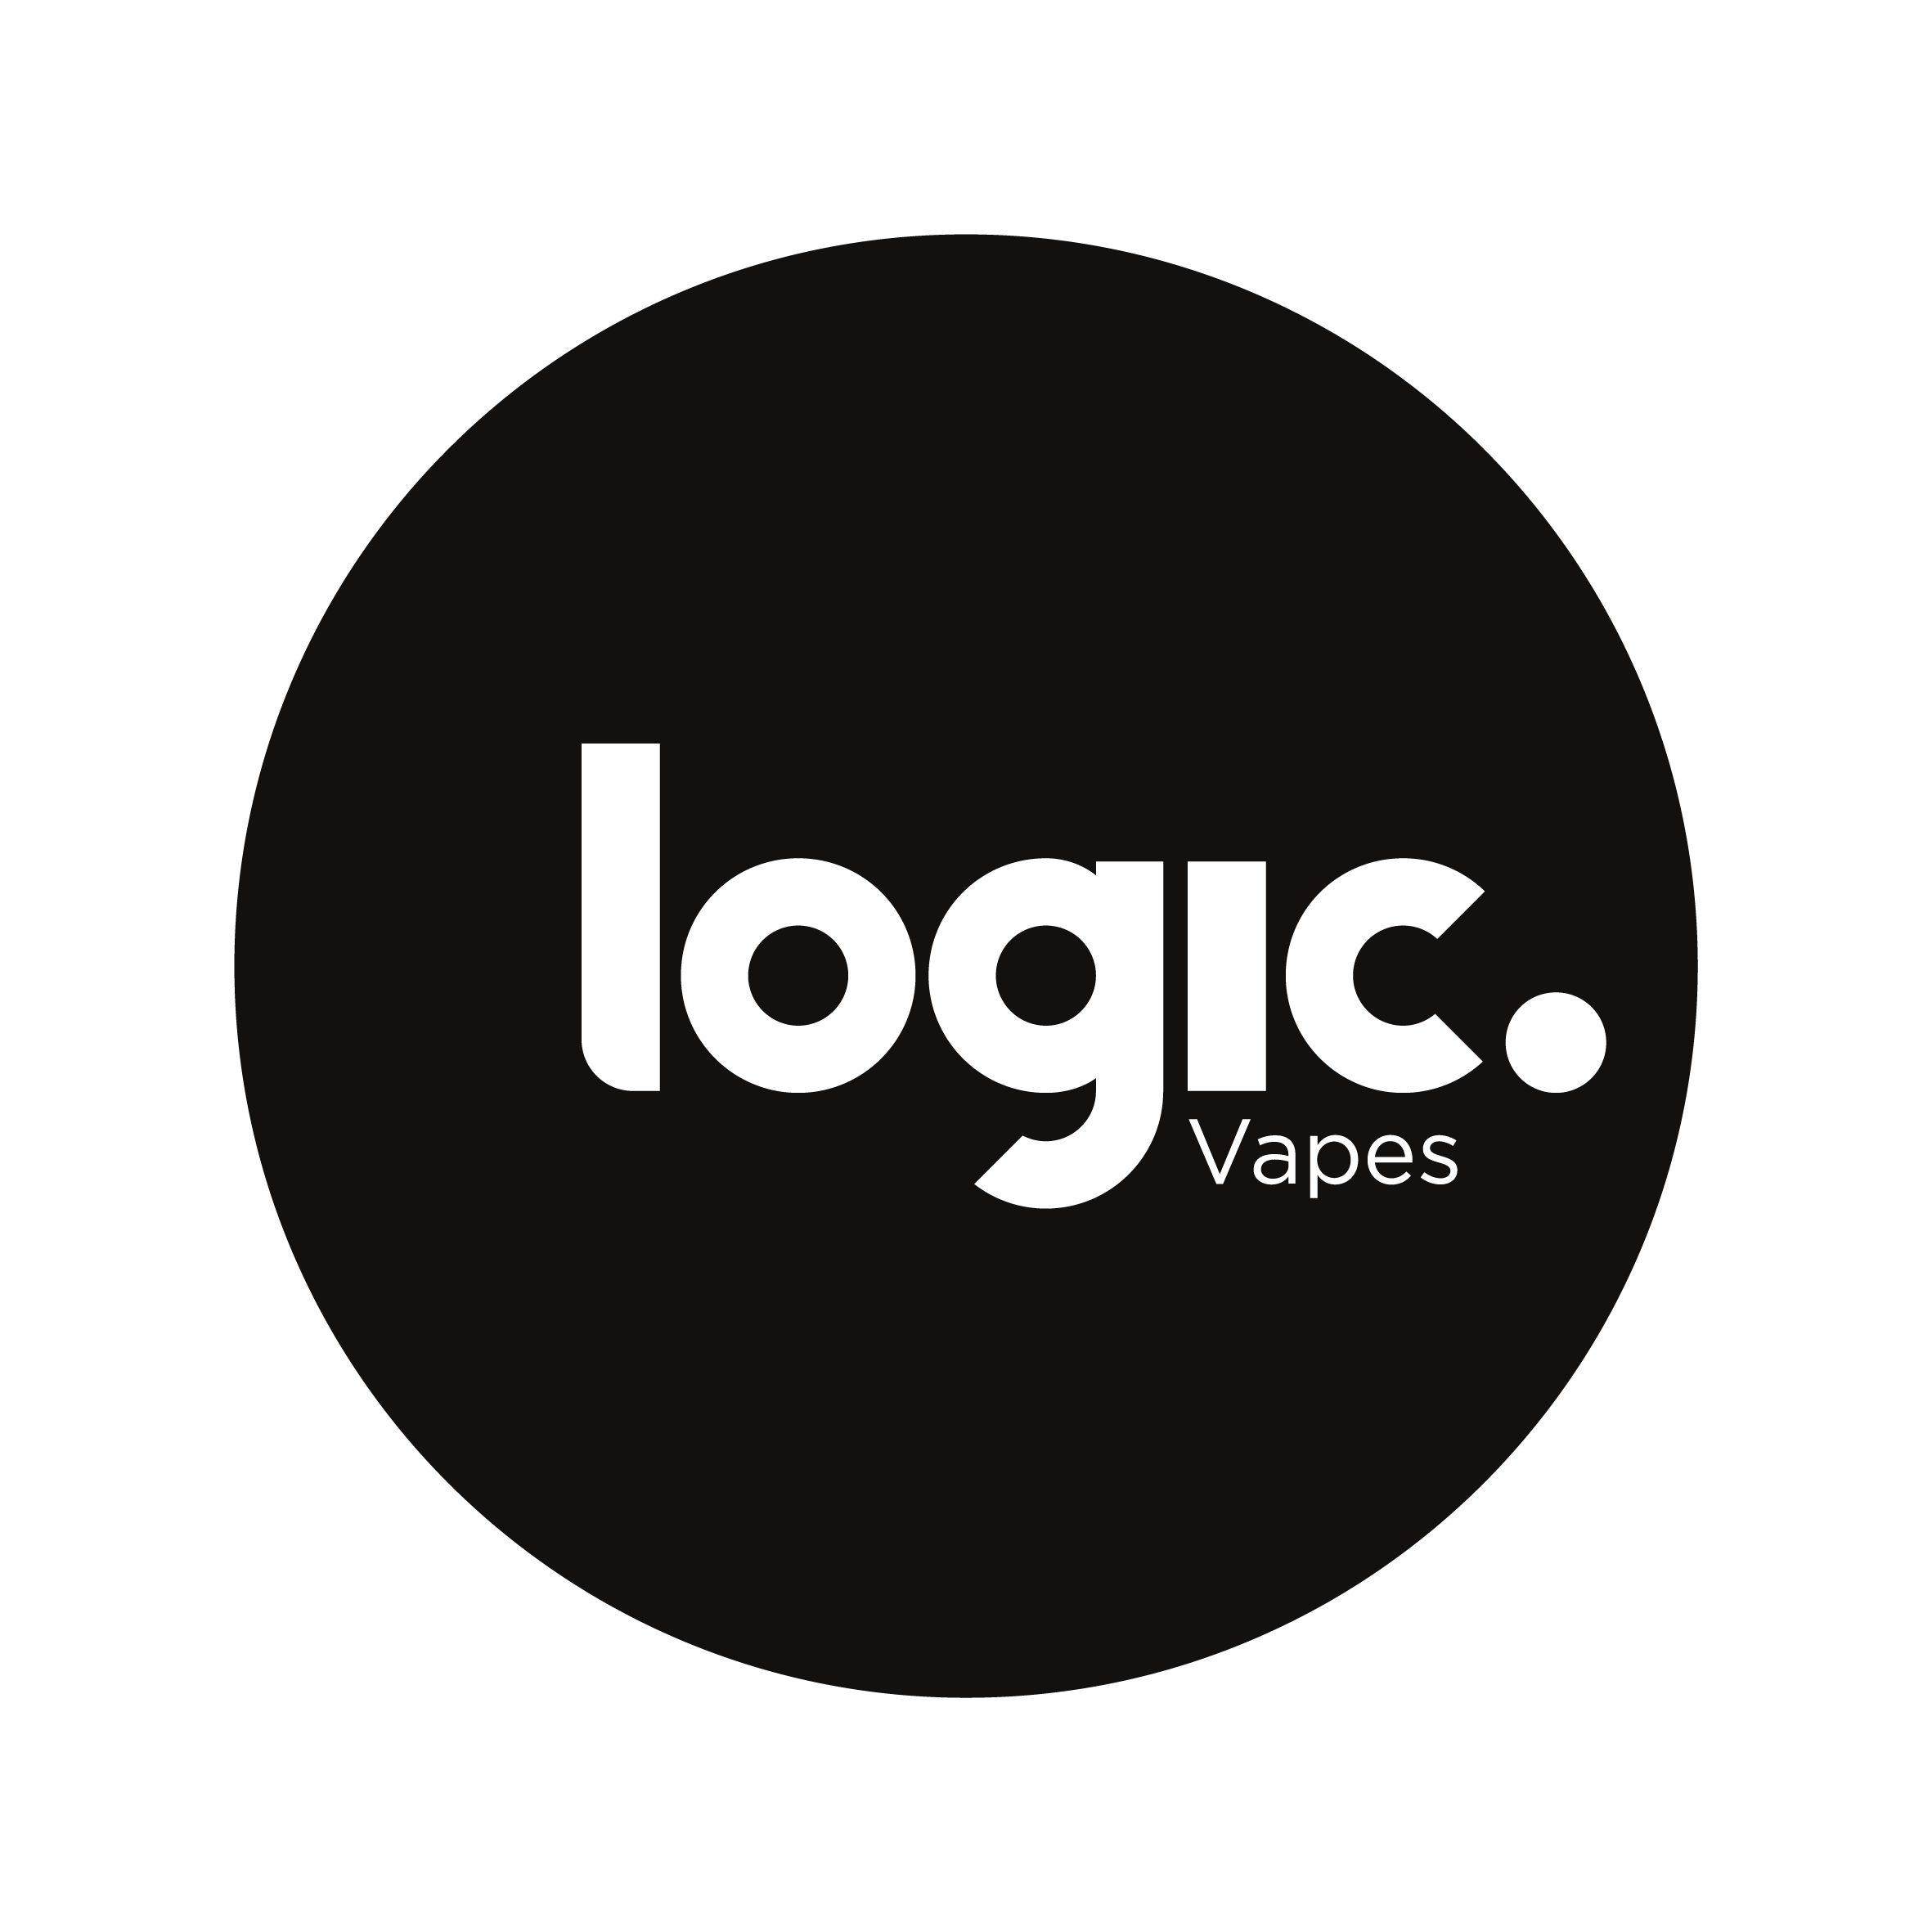 LOGIC LOGO Vapes.png